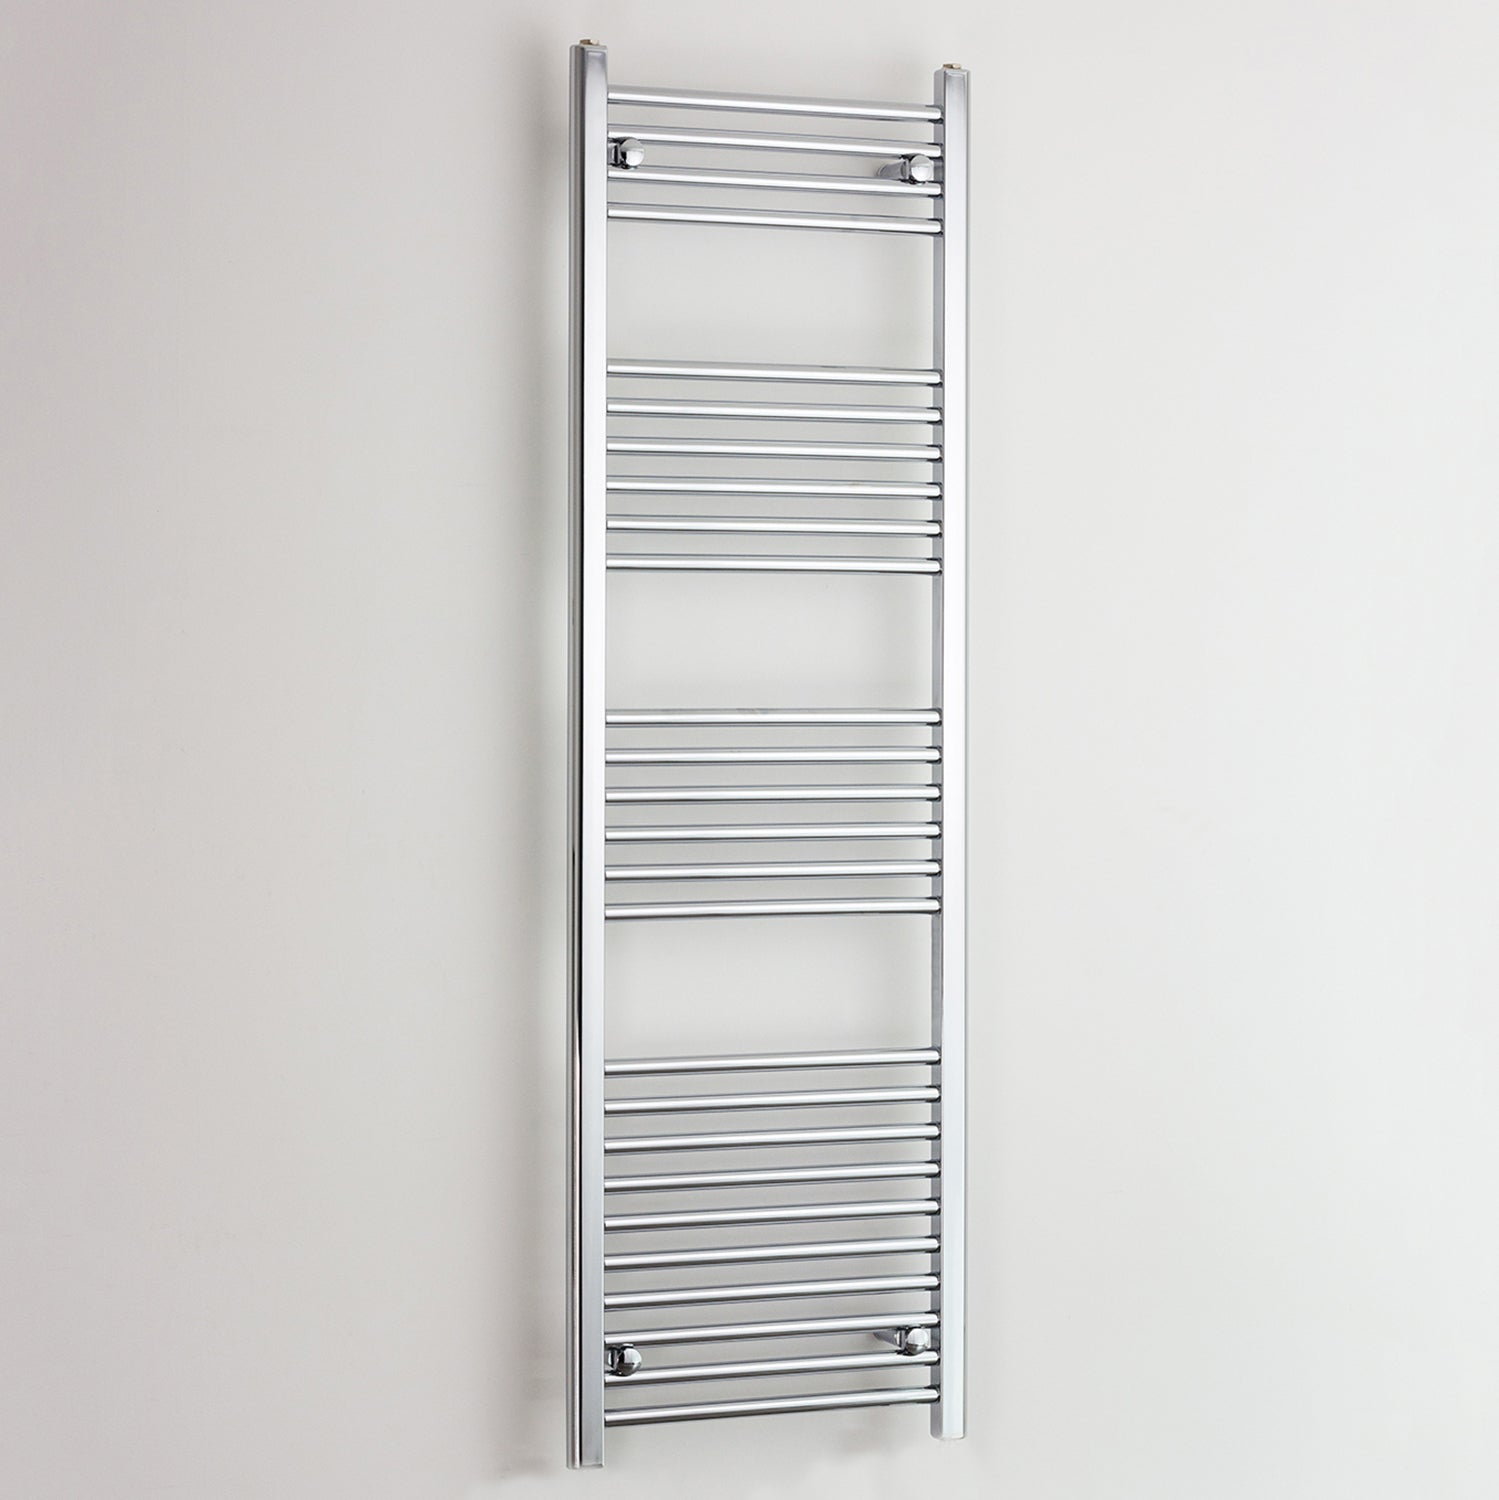 500mm Wide 1600mm High Curved Chrome Heated Towel Rail Radiator HTR,Towel Rail Only